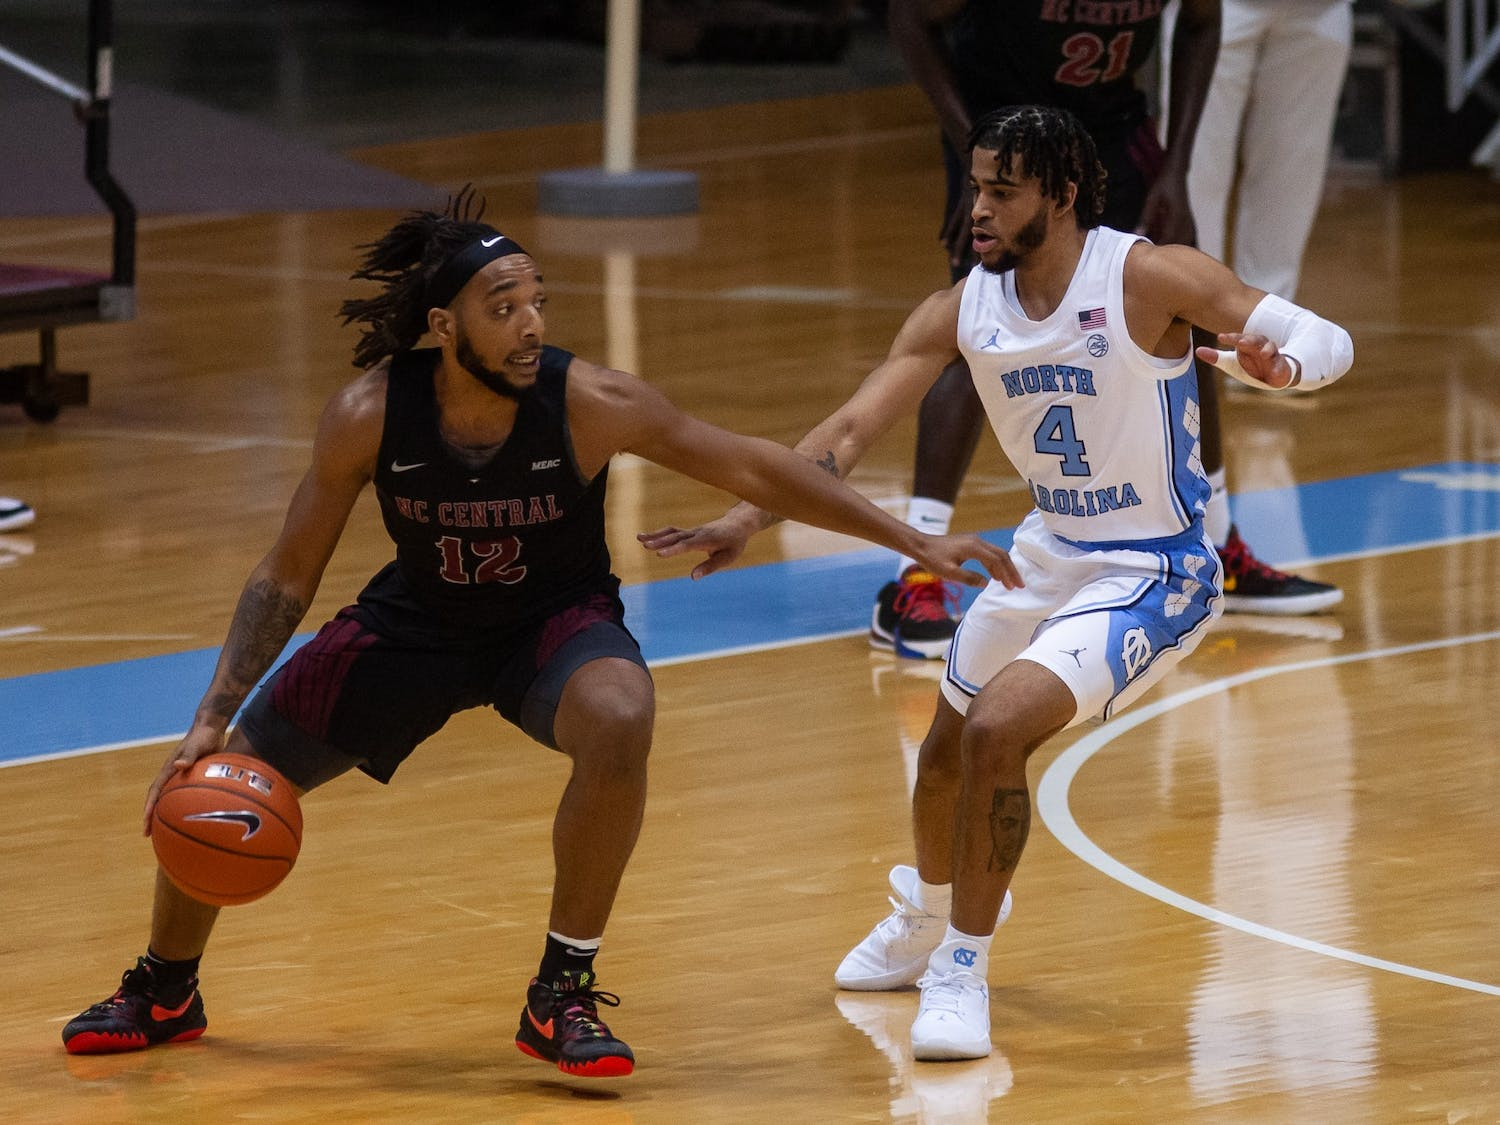 UNC's first year guard RJ Davis (4) defends against N.C. Central's senior guard Jordan Perkins (12) during a game in the Smith Center on Saturday, Dec. 12, 2020. UNC beat N.C. Central 73-67.